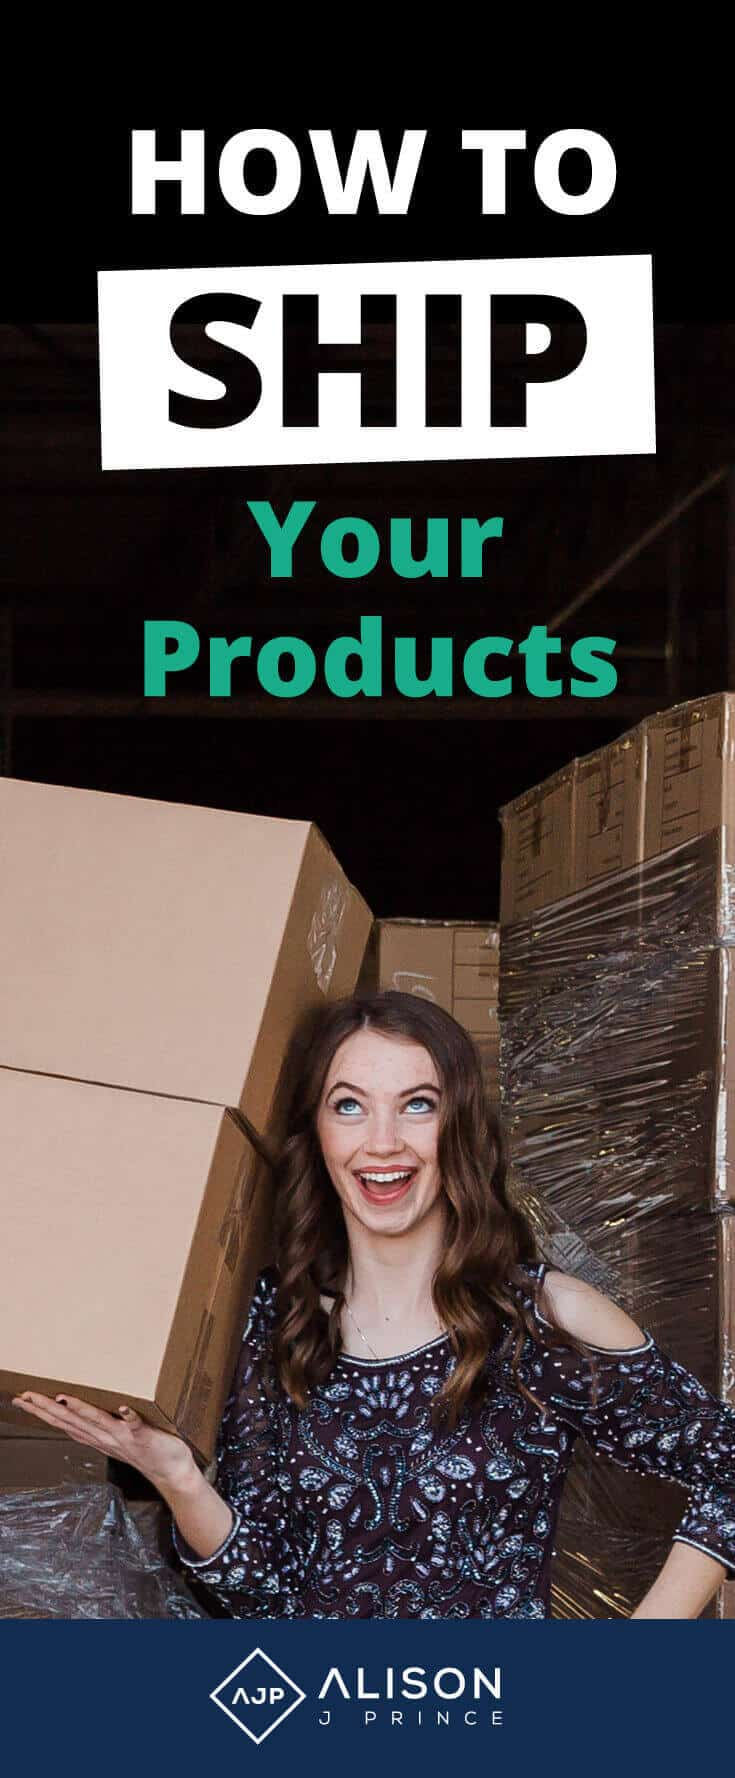 How to ship products, online business, ecommerce, Alison Prince, Shipstation